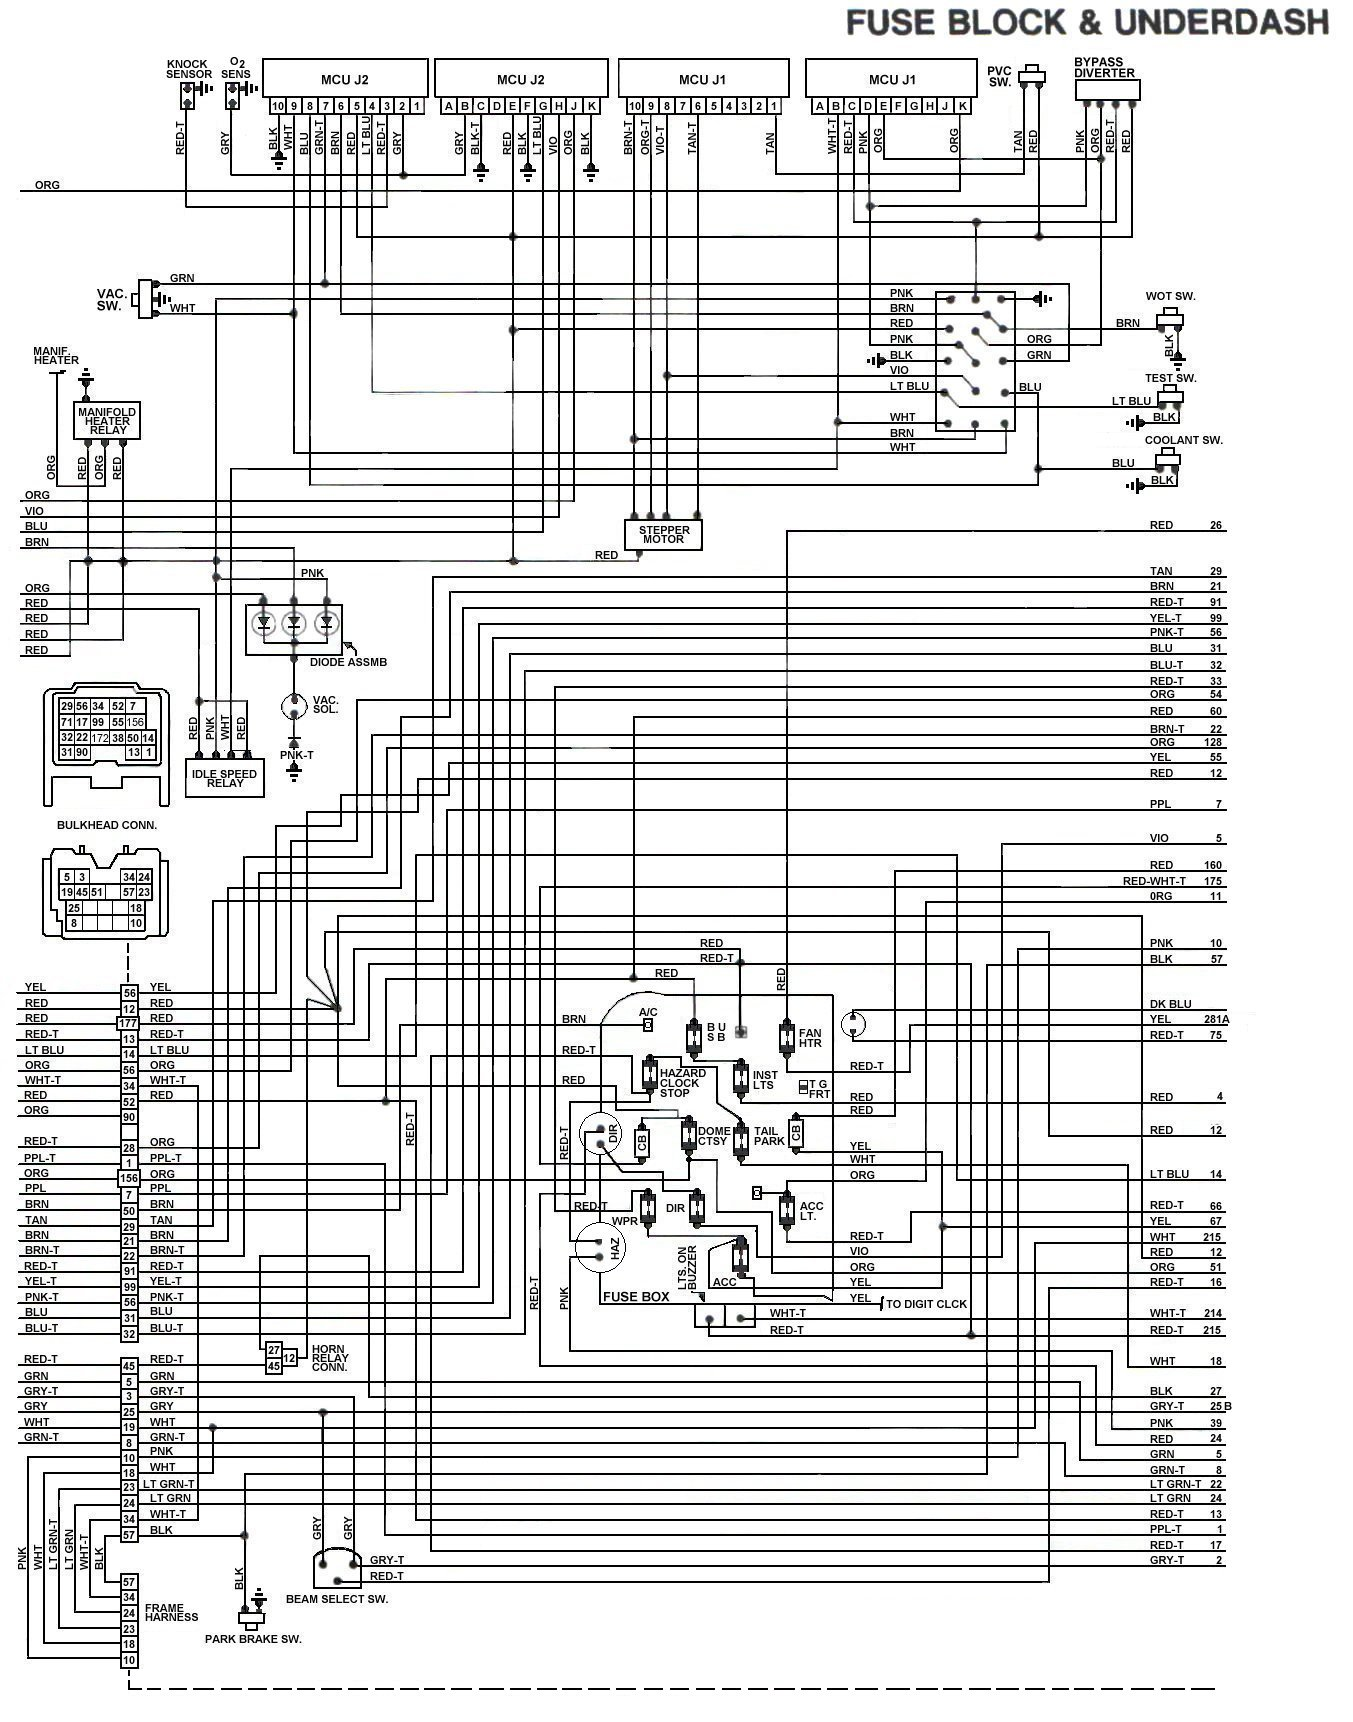 83_FSJ_WiringDiagram_FuseBlock Underdash tom 'oljeep' collins fsj wiring page 1979 c10 wiring diagram at bayanpartner.co